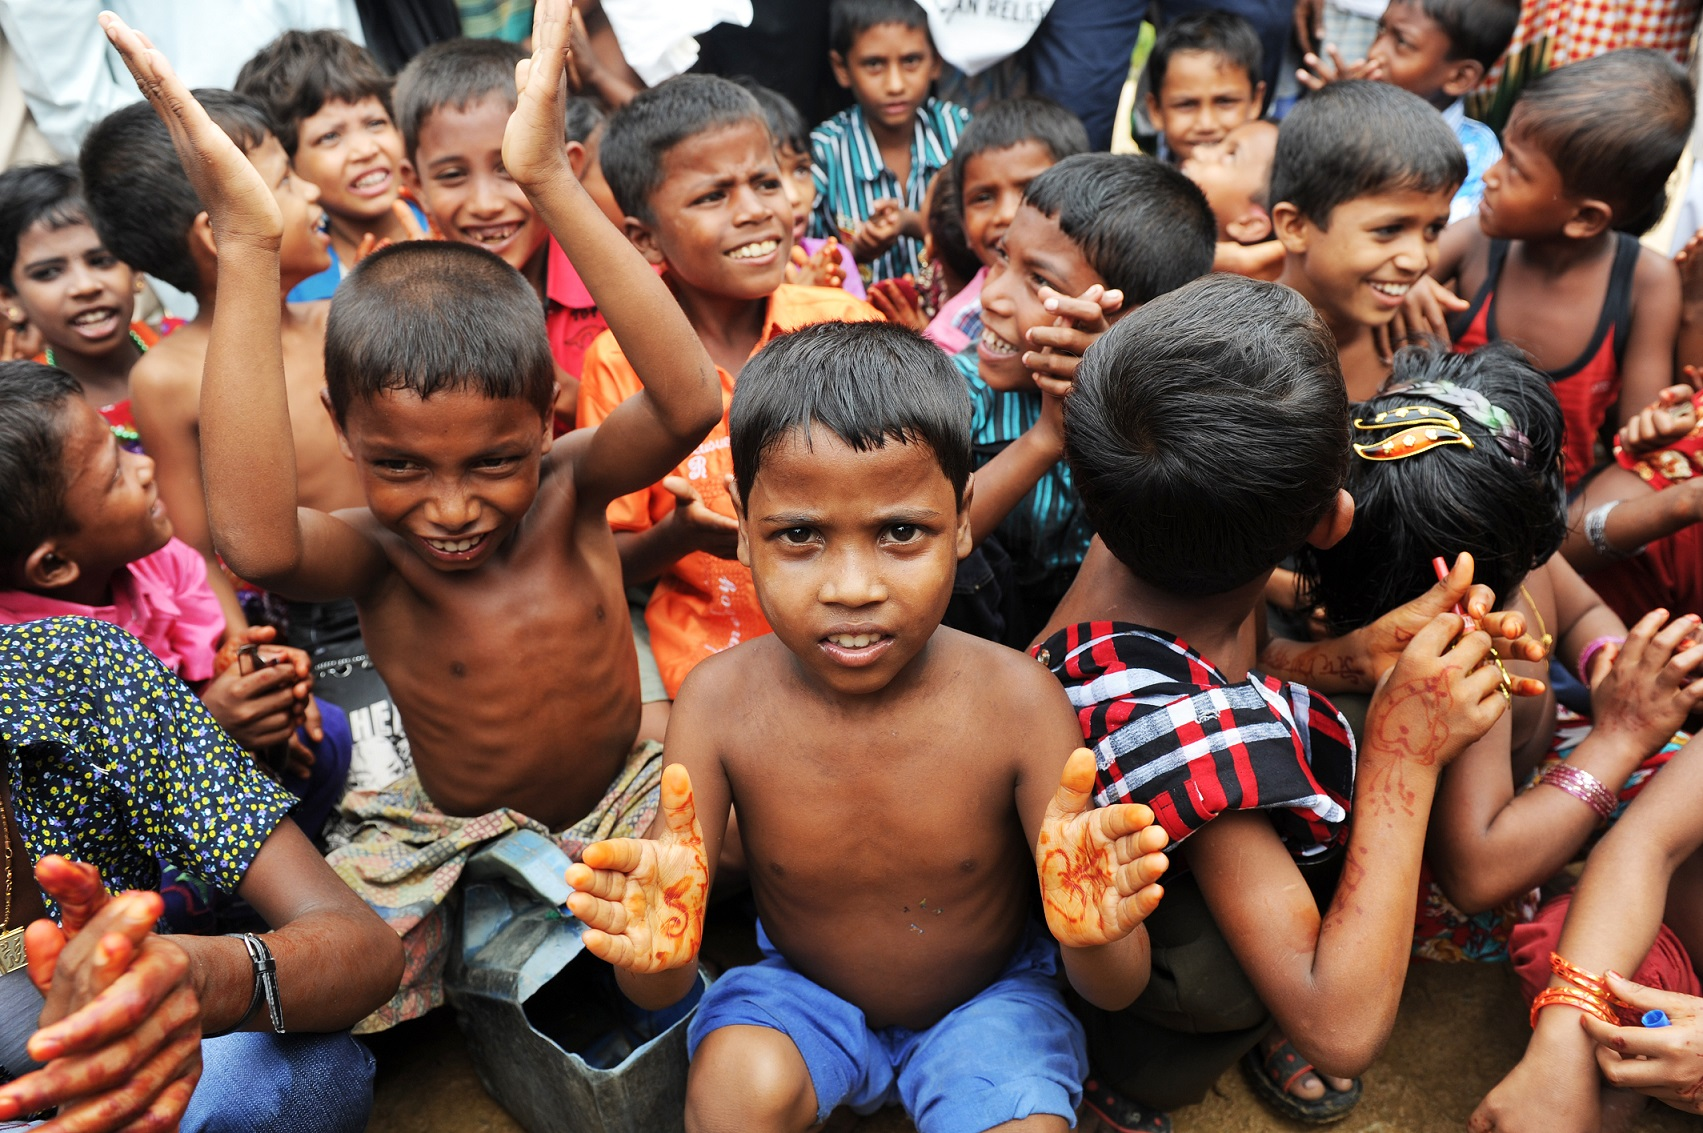 Bangladesh's giant refugee camp plan 'dangerous', says United Nations  official